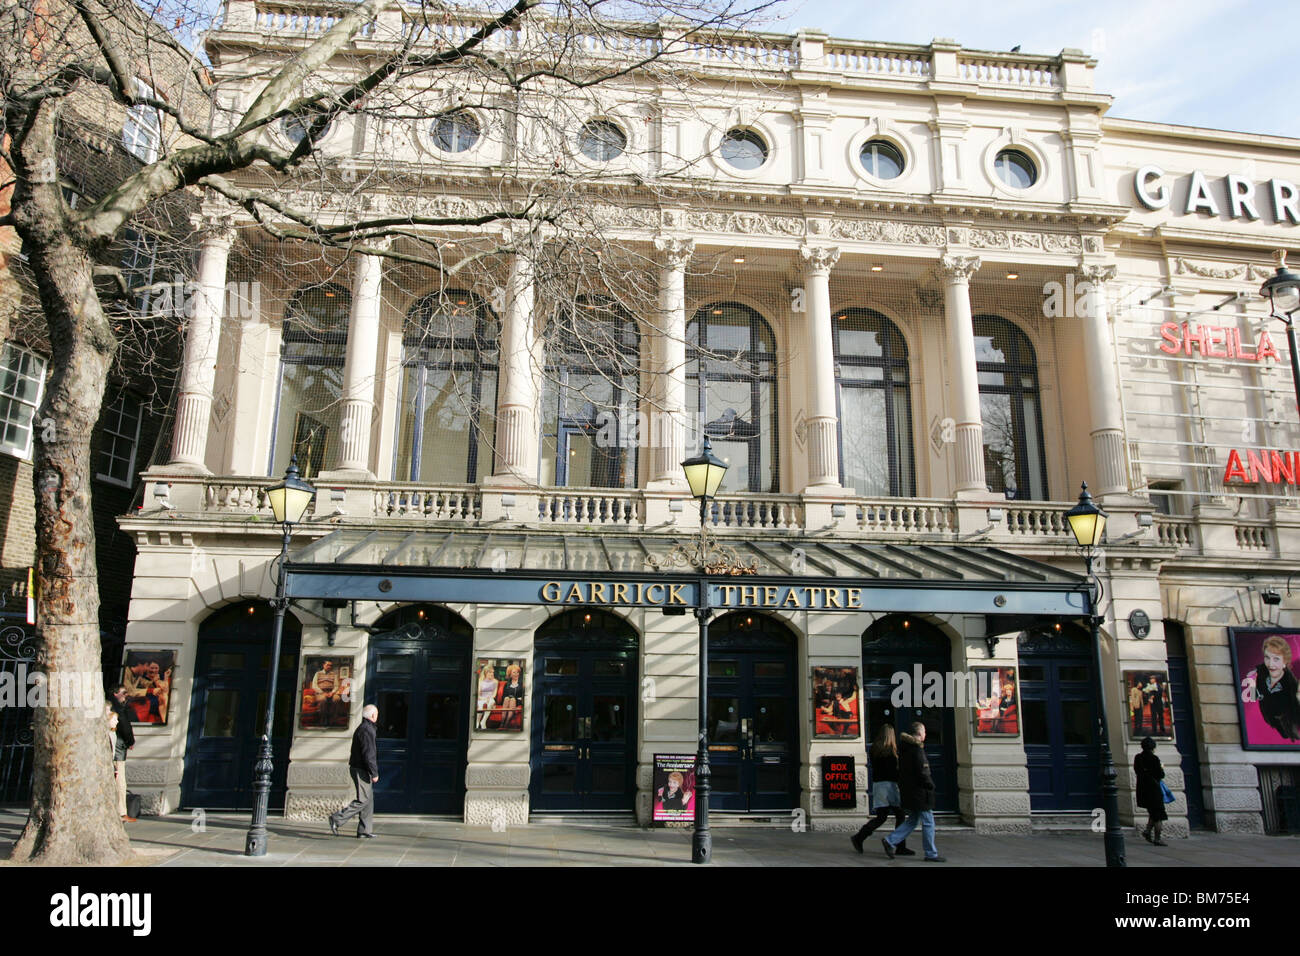 The Garrick Theatre, London - Stock Image